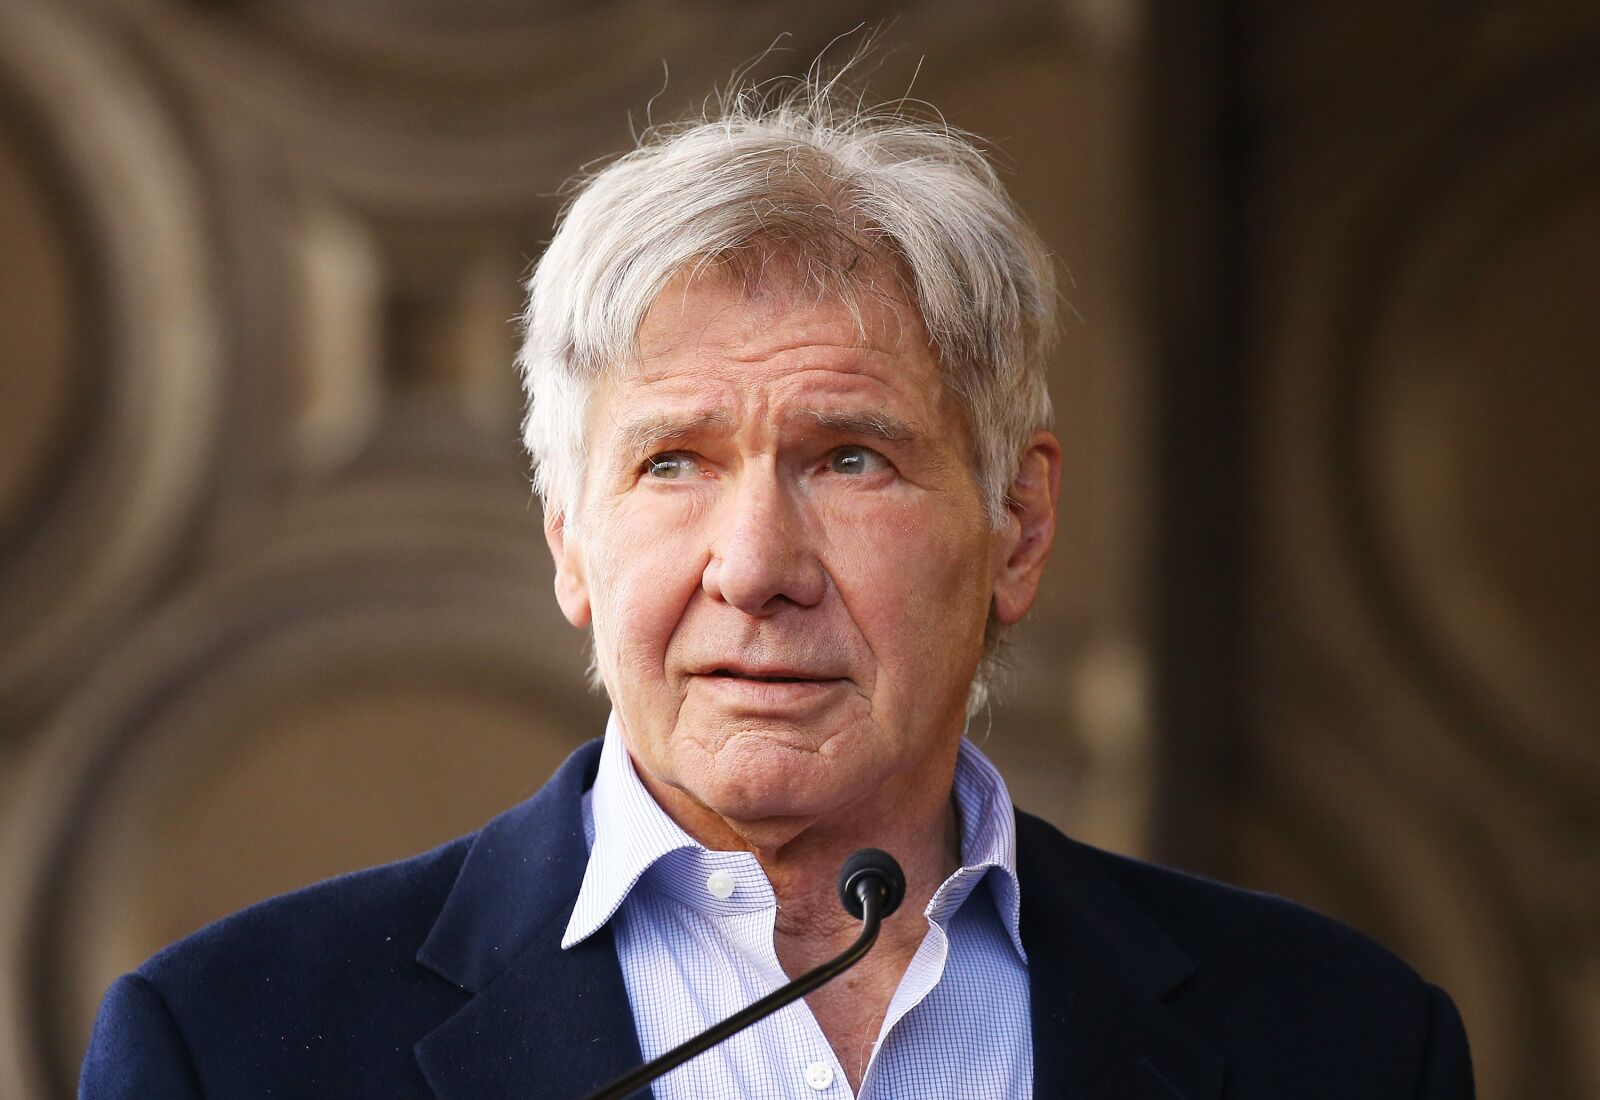 Harrison Ford 'delighted' to be part of Secret Life of Pets 2